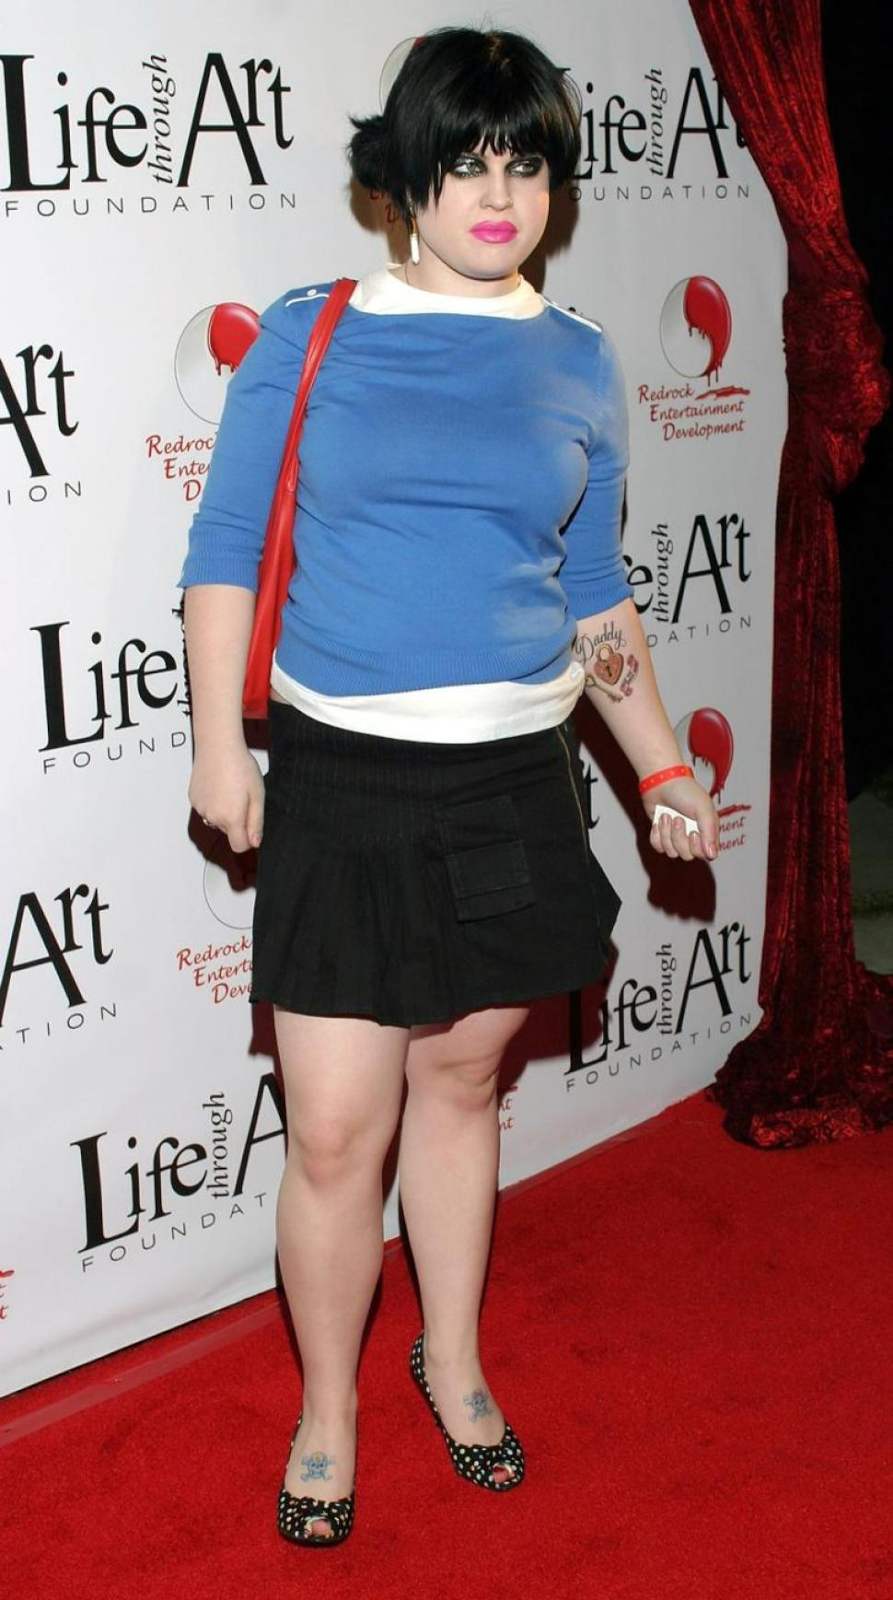 Kelly Osbourne has lost weight because of drugs 10/20/2009 73